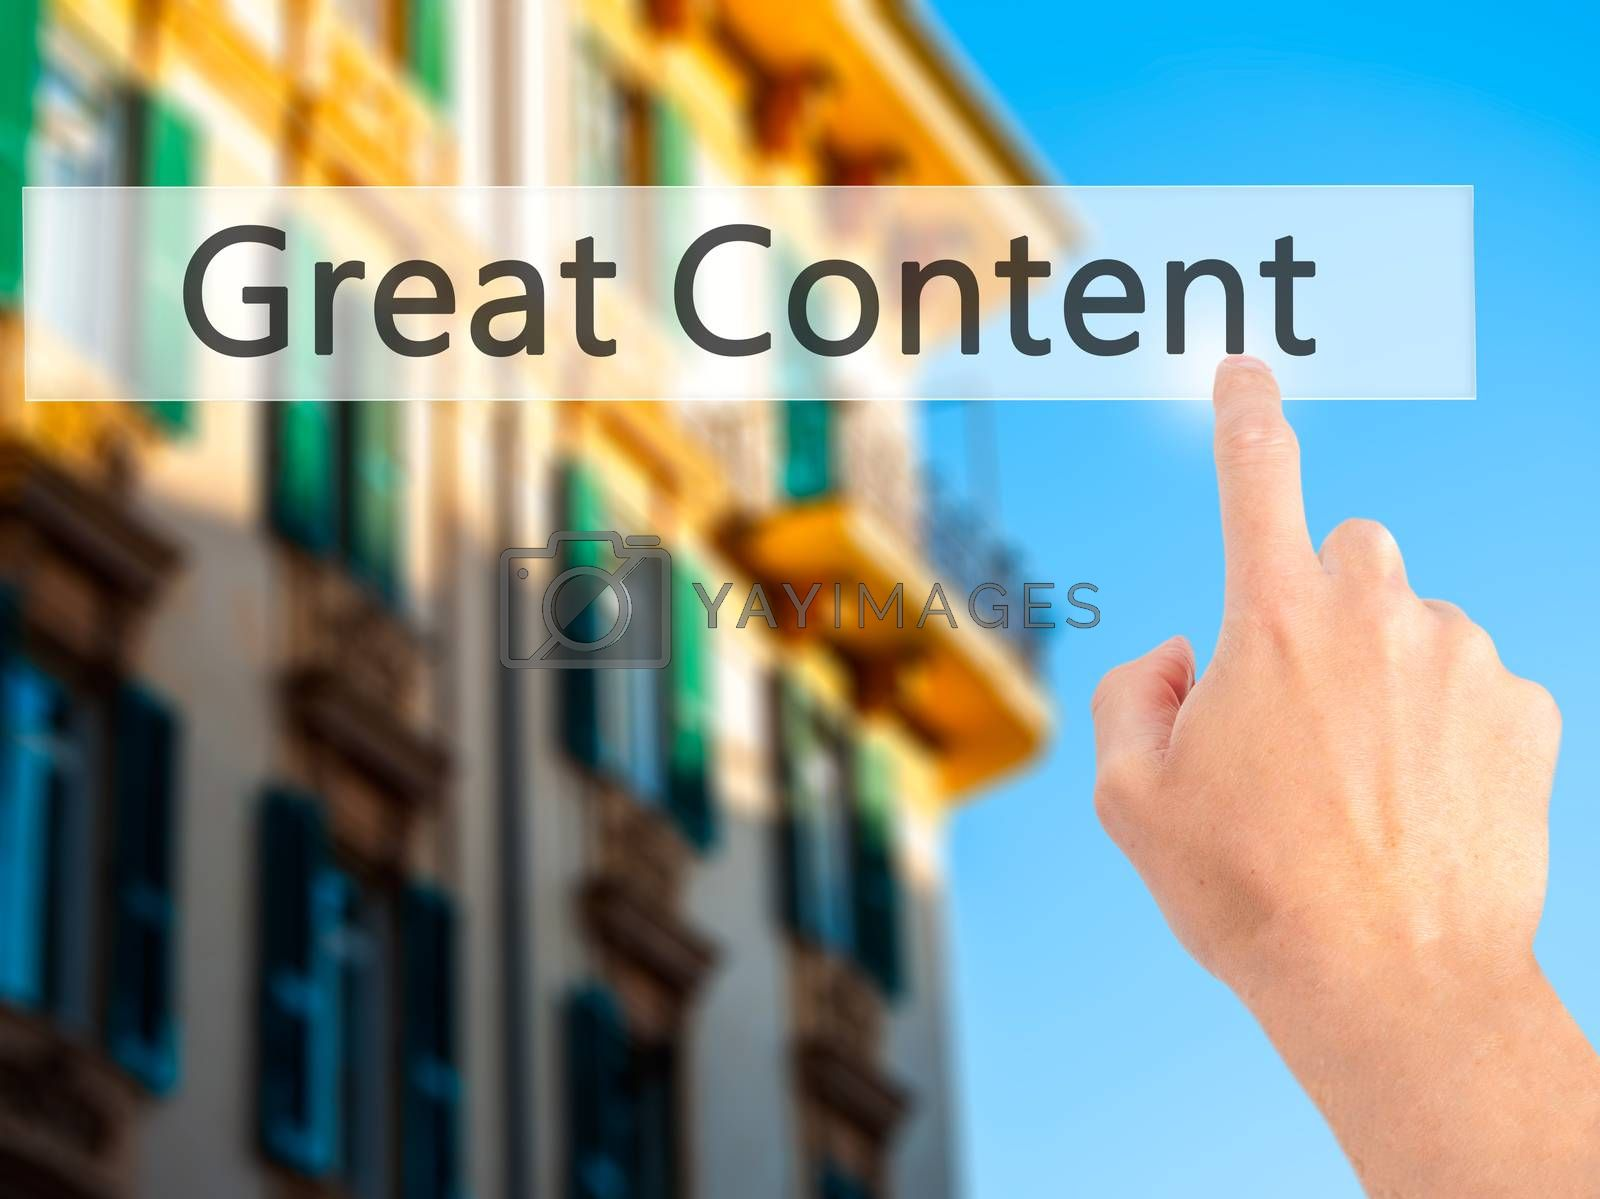 Great Content- Hand pressing a button on blurred background conc by jackald